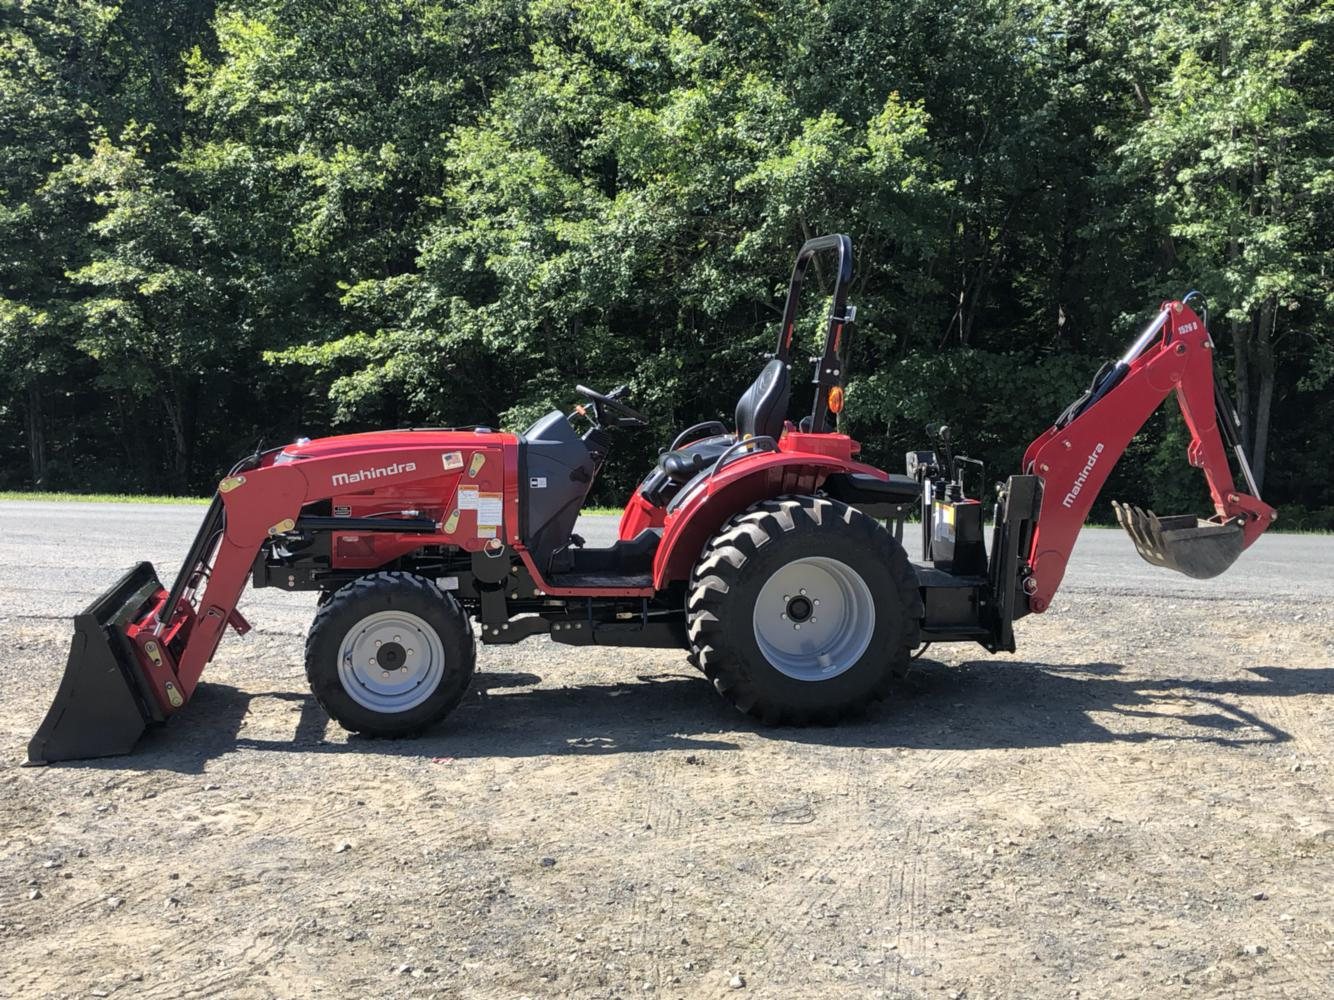 2017 Mahindra 1526 HST Tractor w/ Loader & Backhoe & Extras